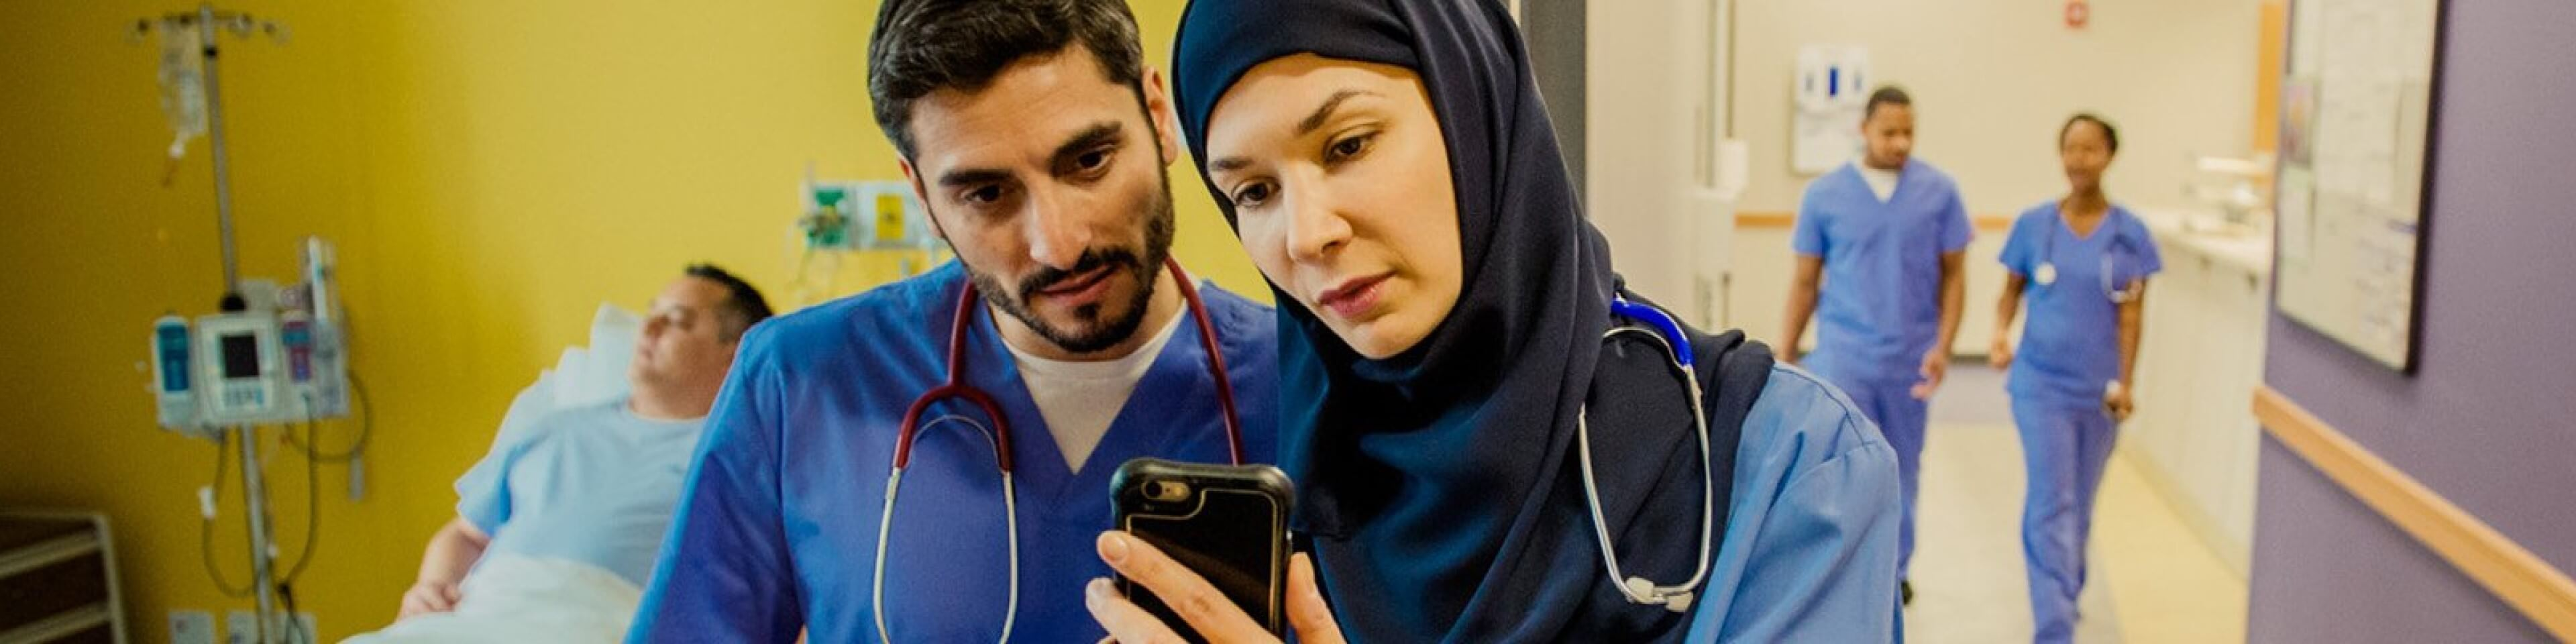 Doctors reviewing patient data on a secure mobile device